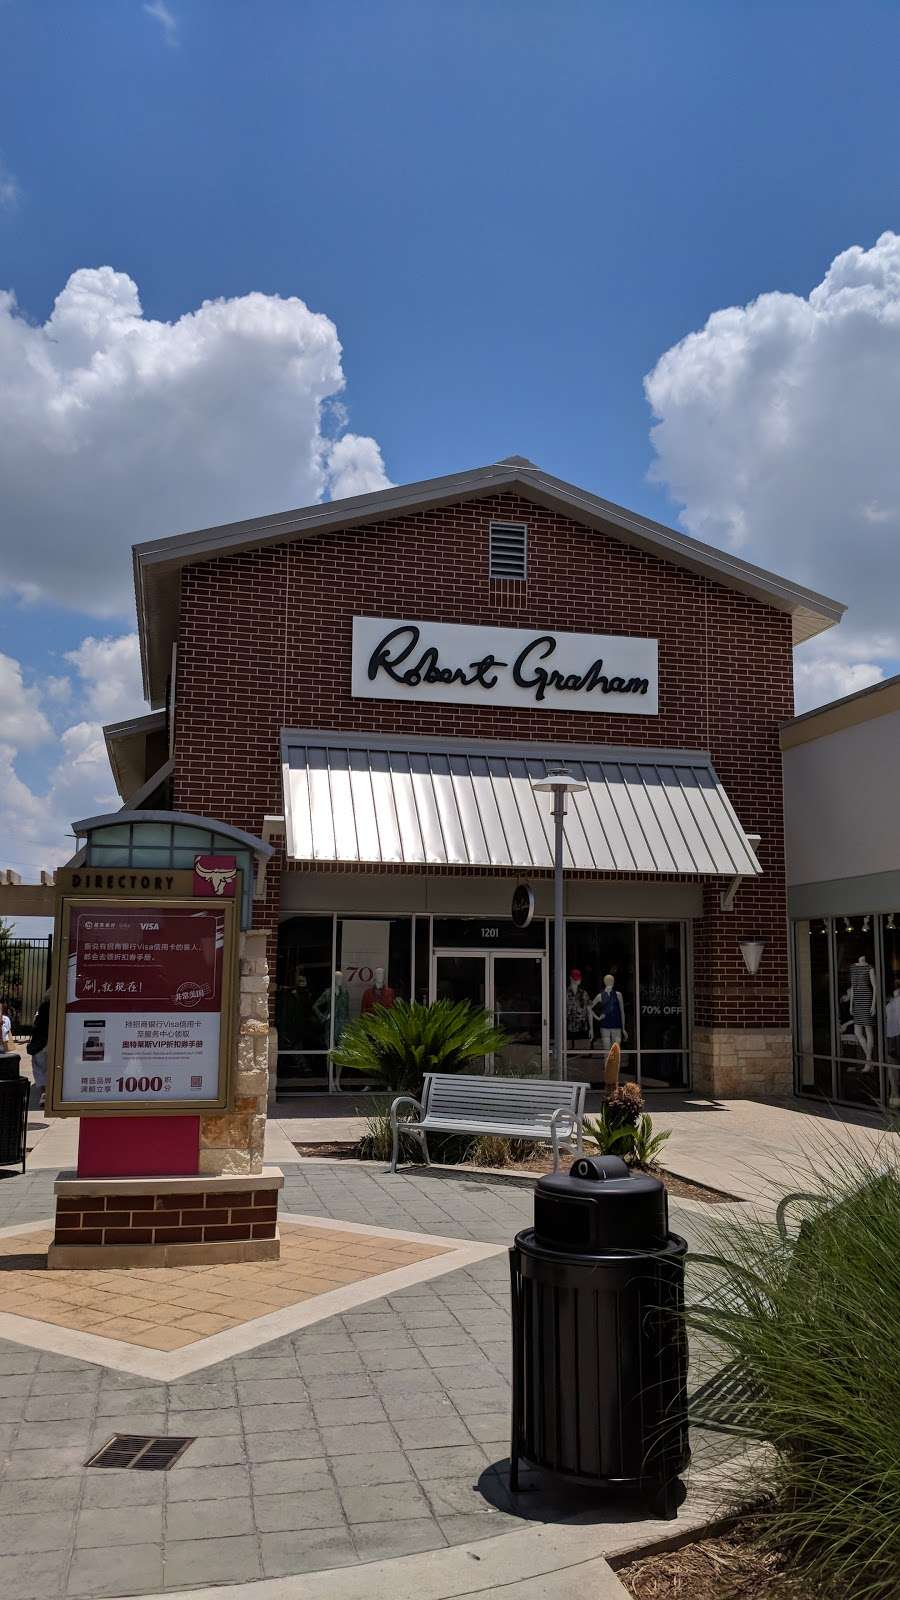 Robert Graham Outlet - clothing store  | Photo 2 of 2 | Address: Houston Premium Outlets, 29300 Hempstead Road, #1201, Cypress, TX 77433, USA | Phone: (281) 256-7429